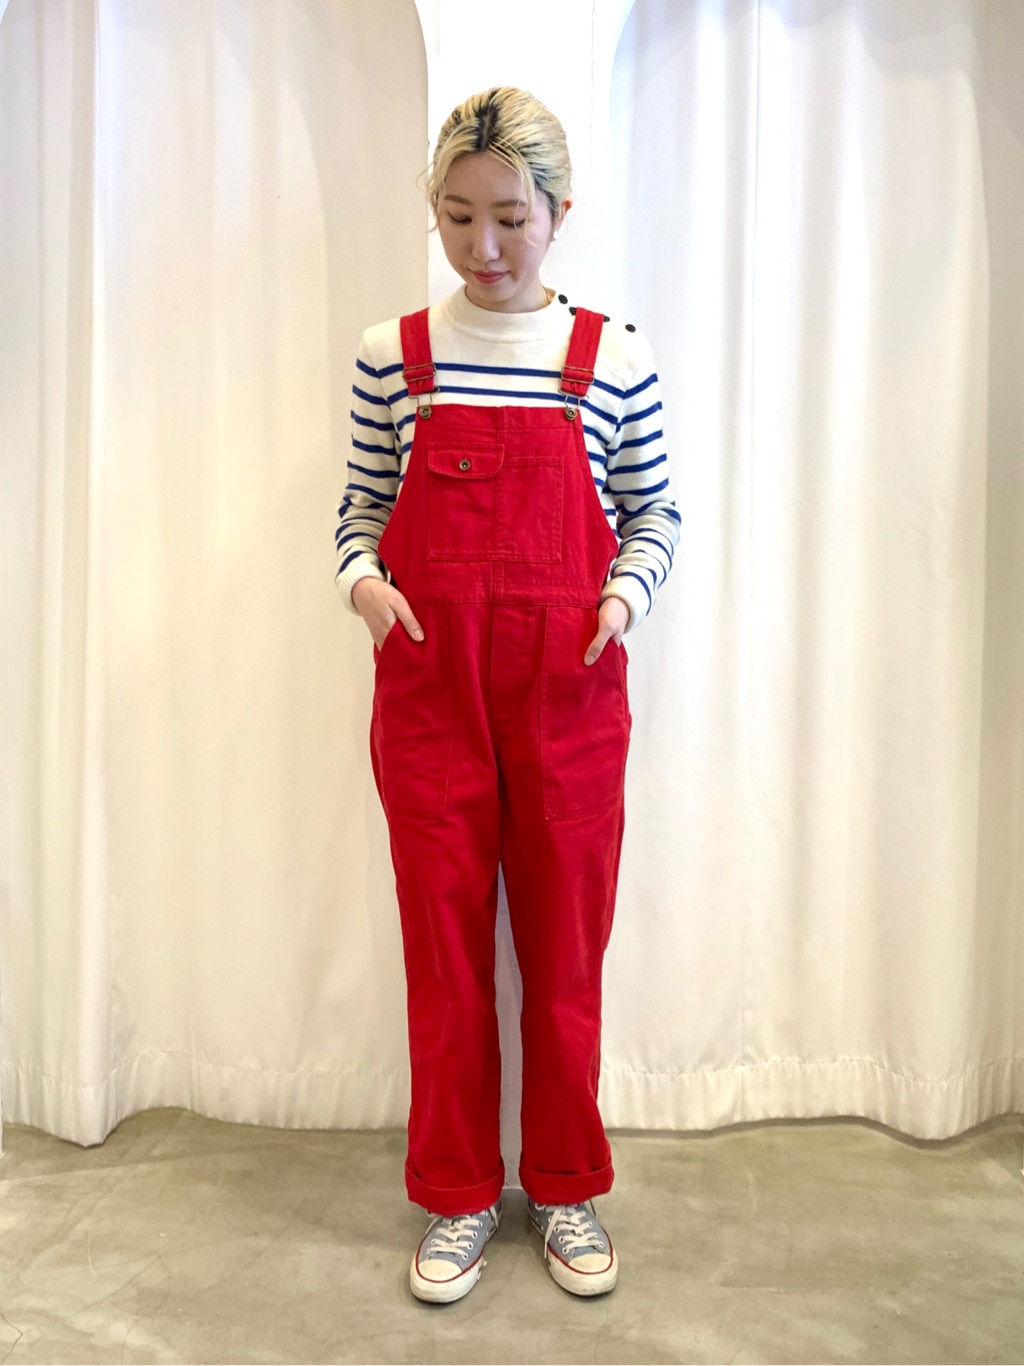 Dot and Stripes CHILD WOMAN ラフォーレ原宿 身長:160cm 2021.01.08